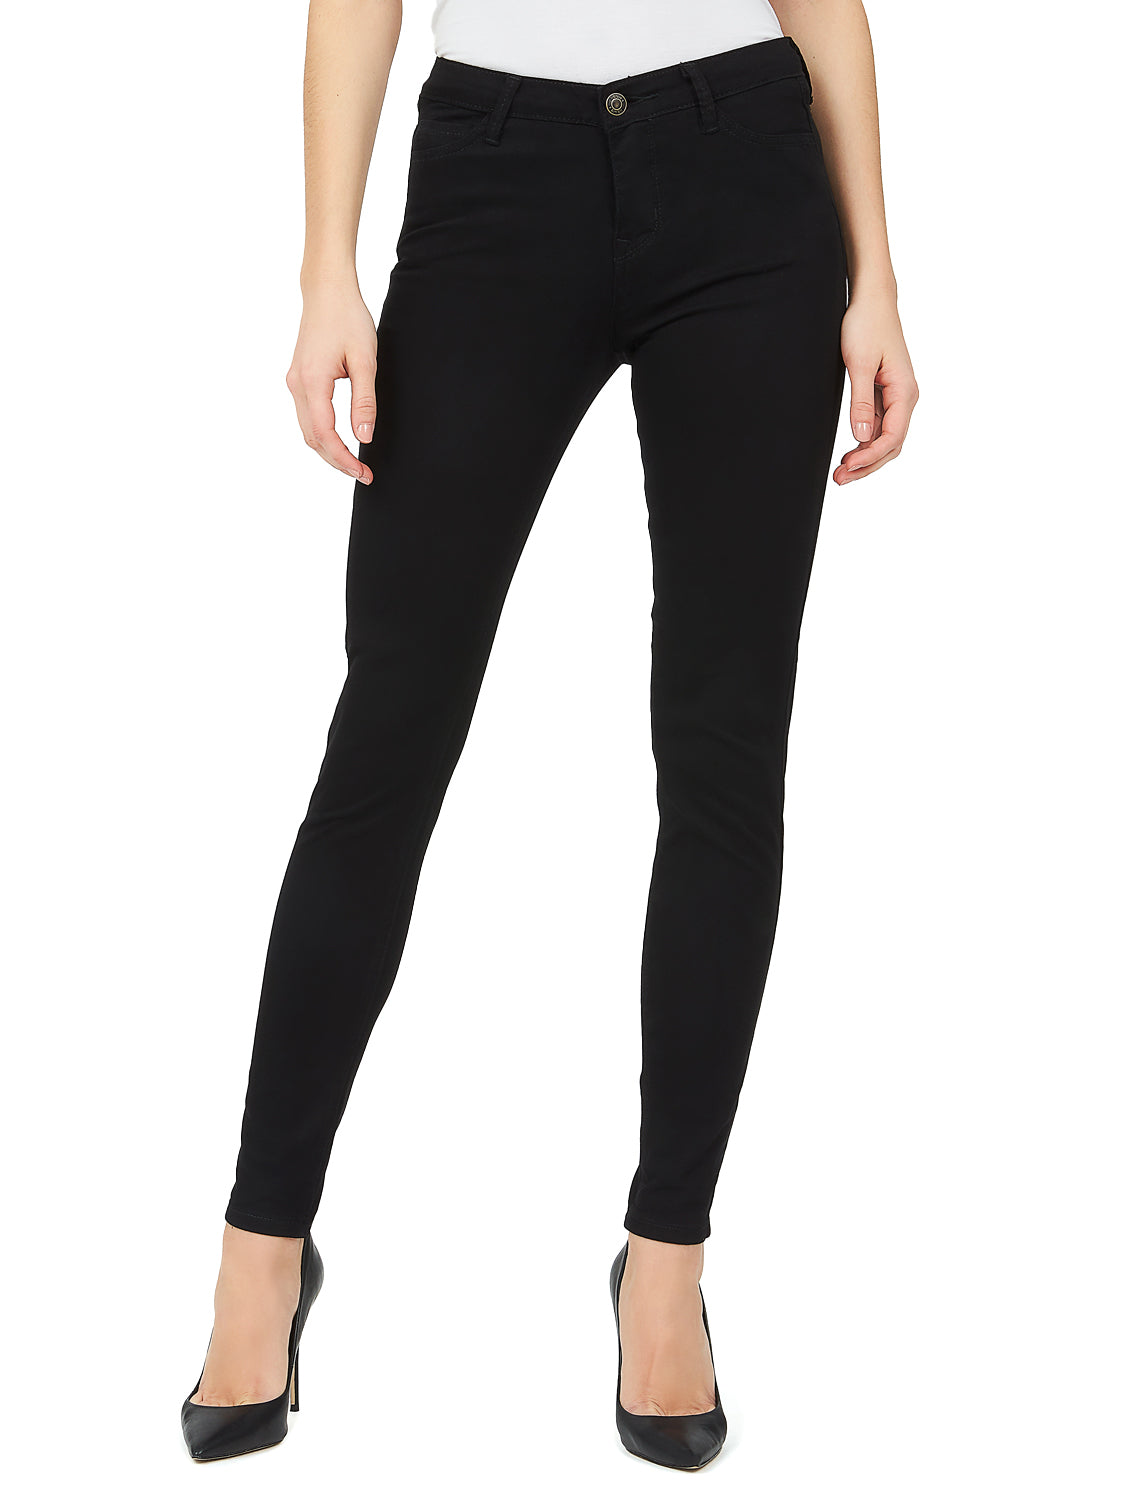 Pantalon moulant extensible